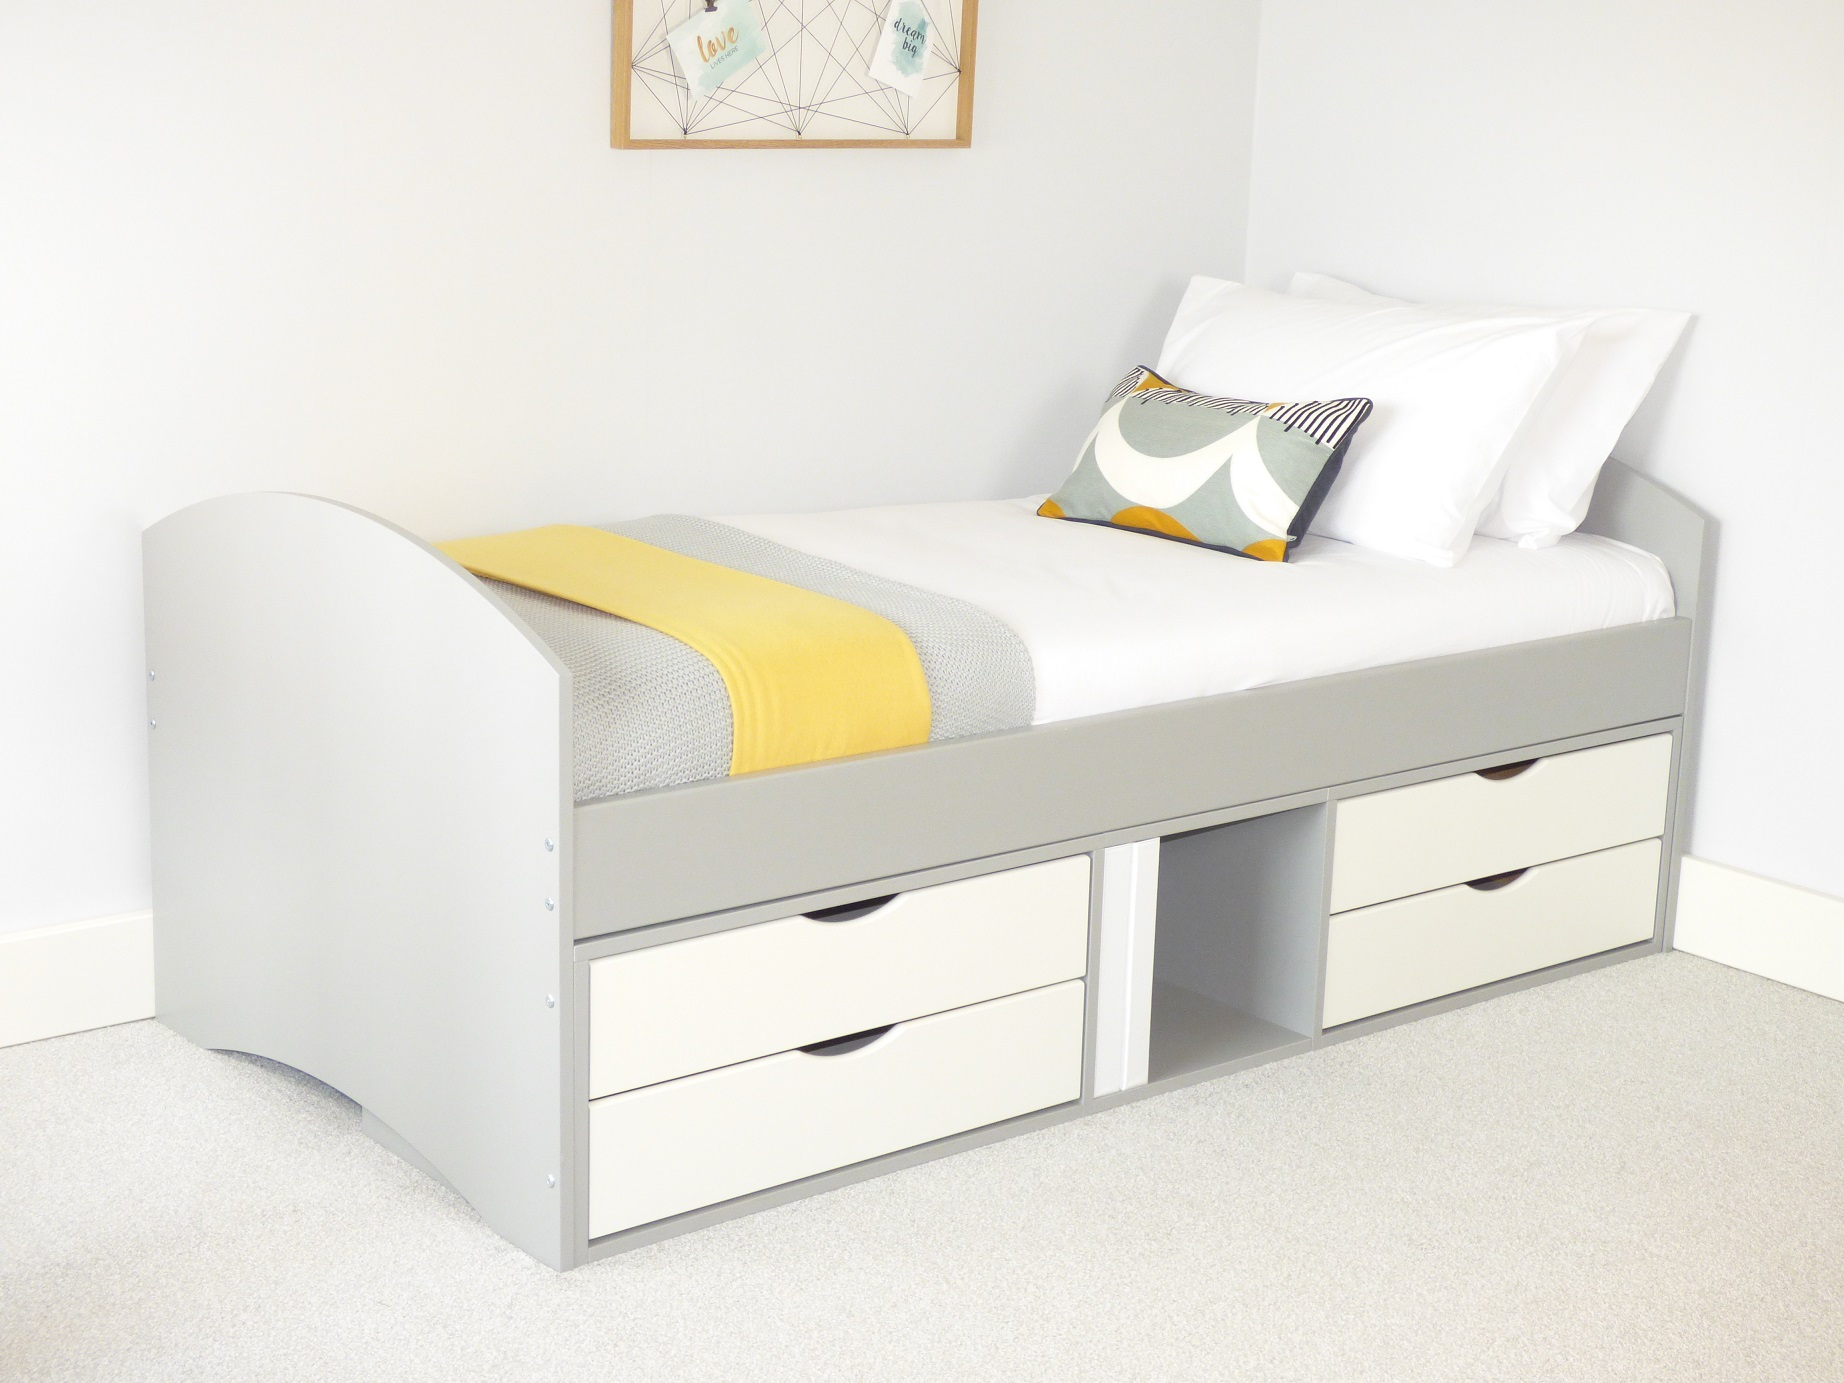 Kids beds with drawers